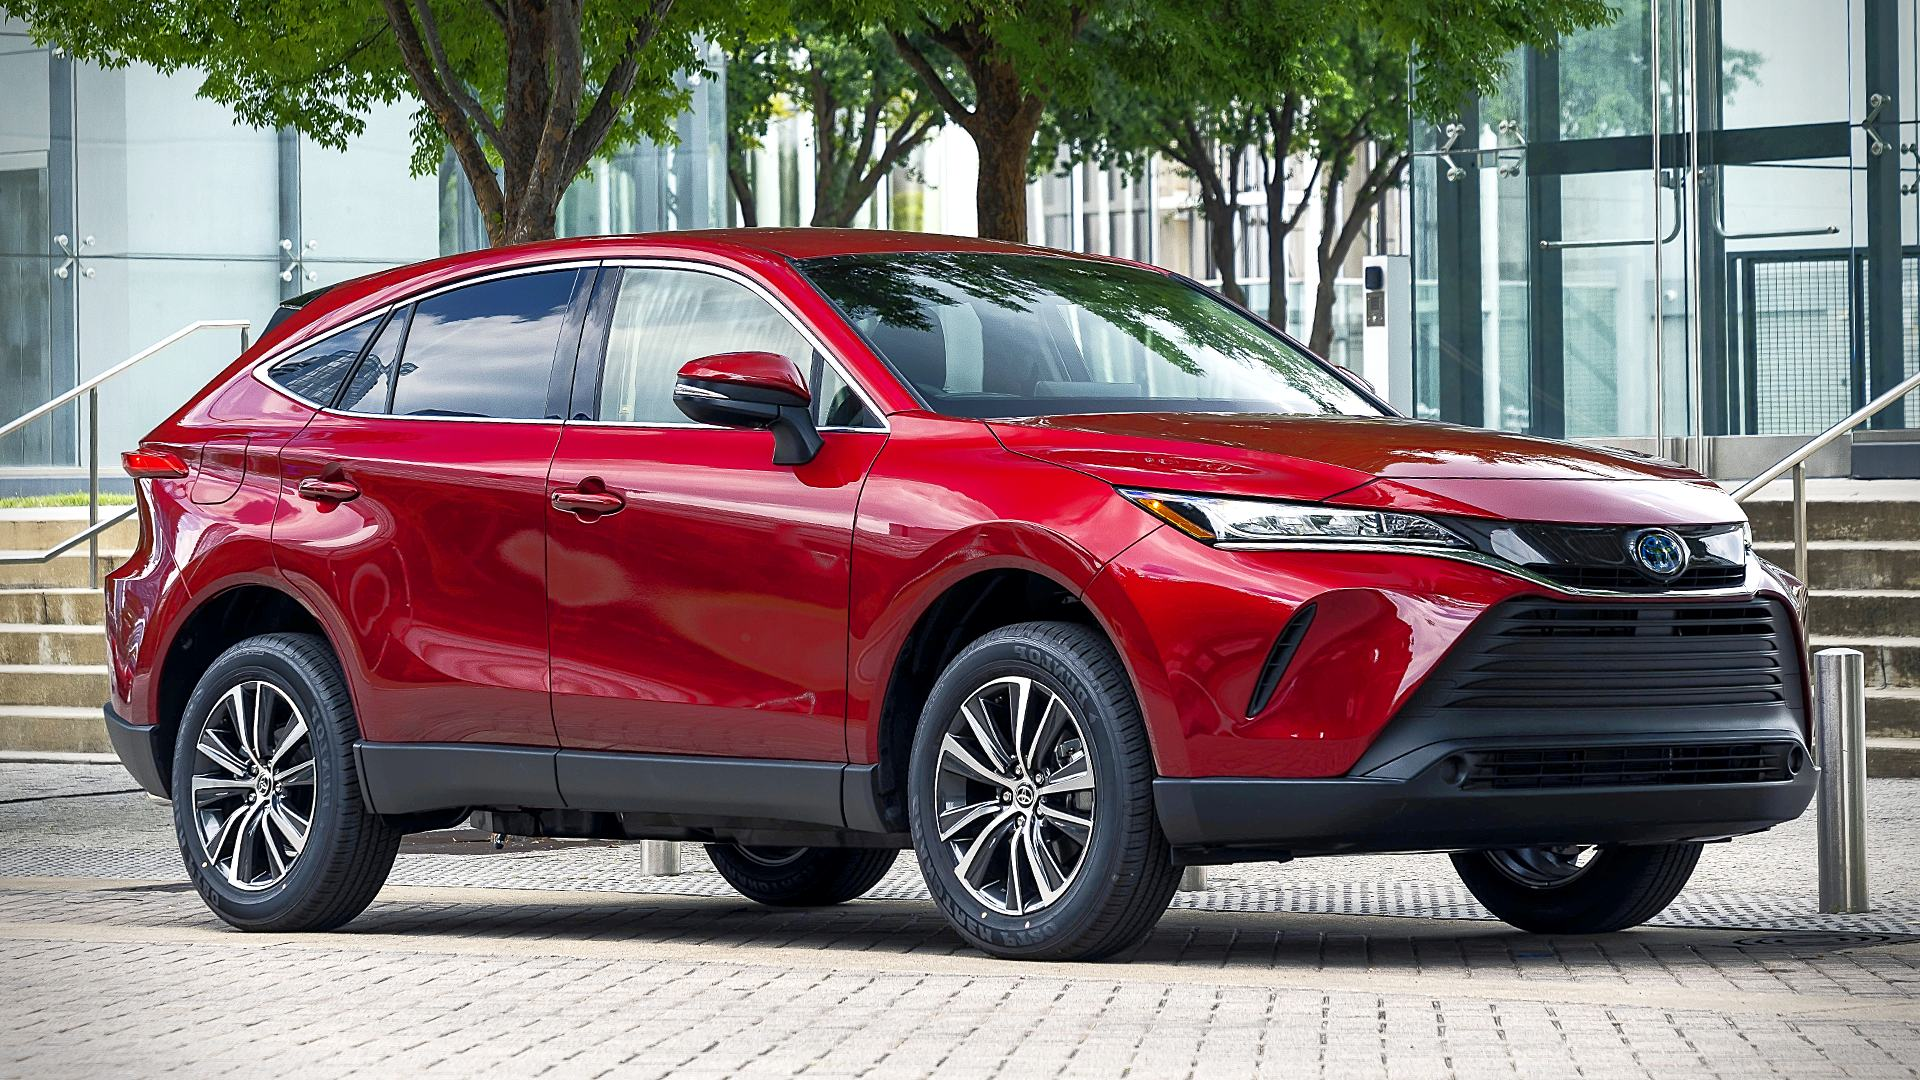 2021 Toyota Venza Red SUV Photos